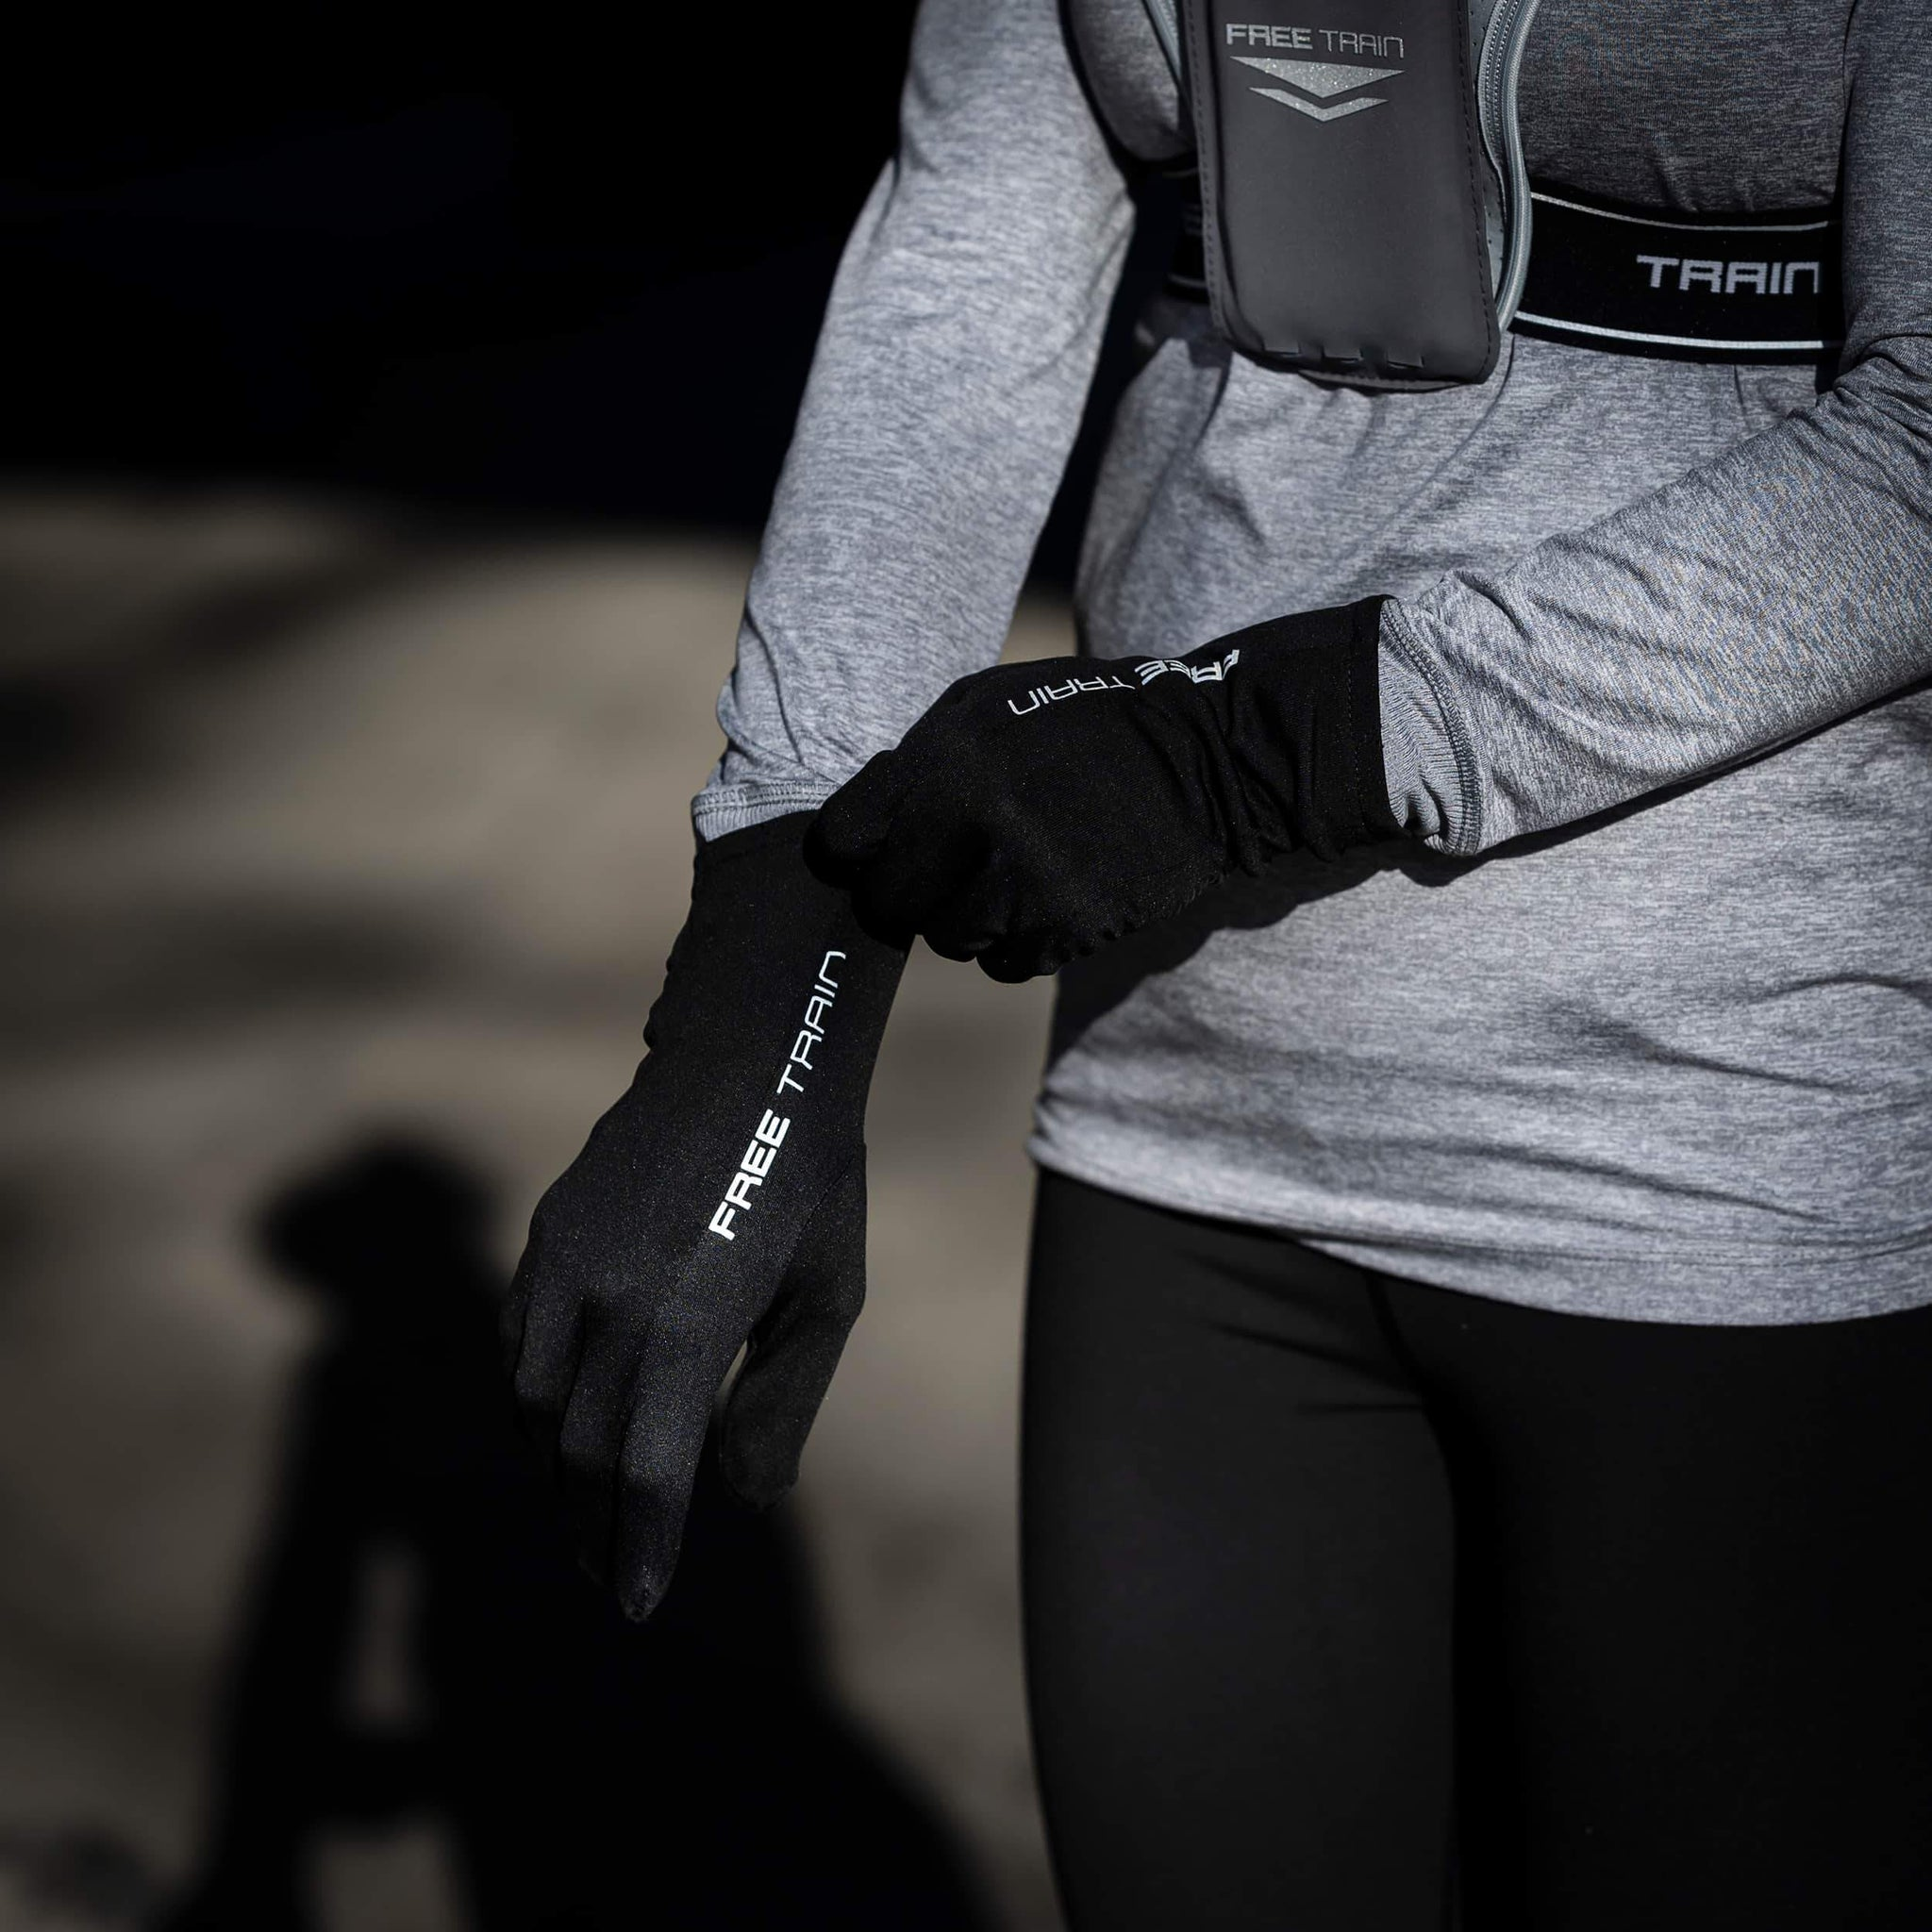 Freetrain G1 Water Resistant Gloves